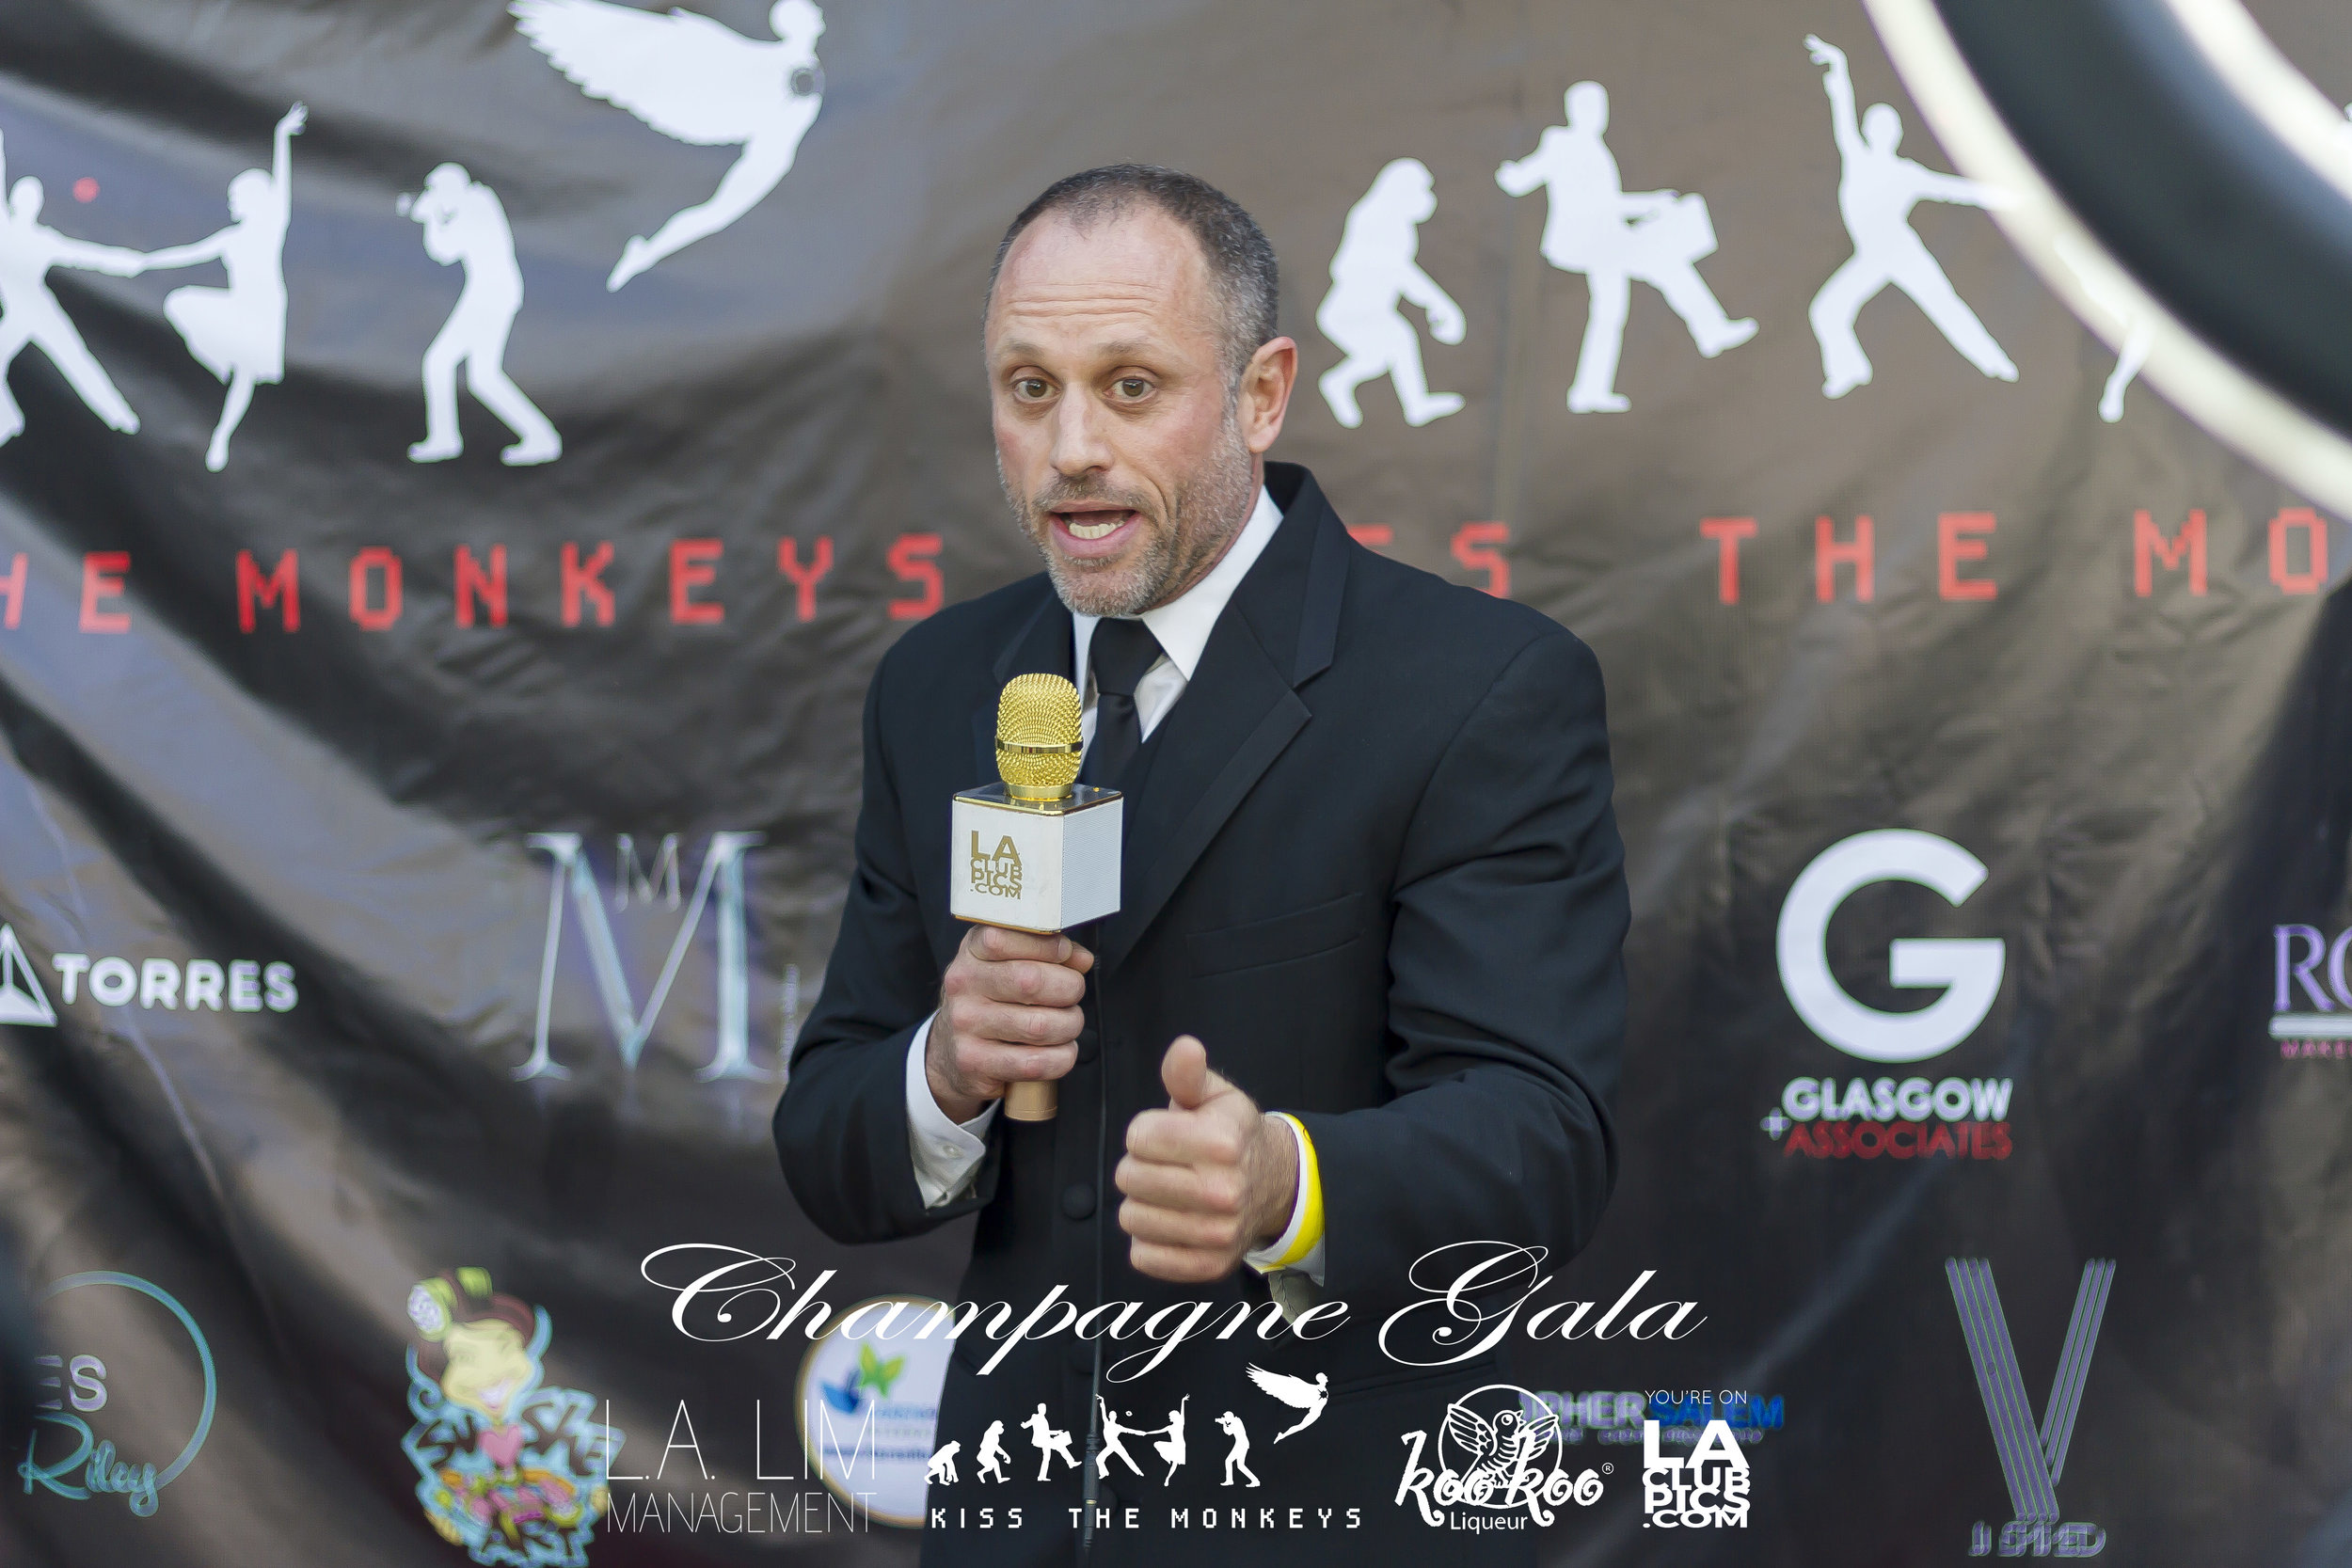 Kiss The Monkeys - Champagne Gala - 07-21-18_177.jpg